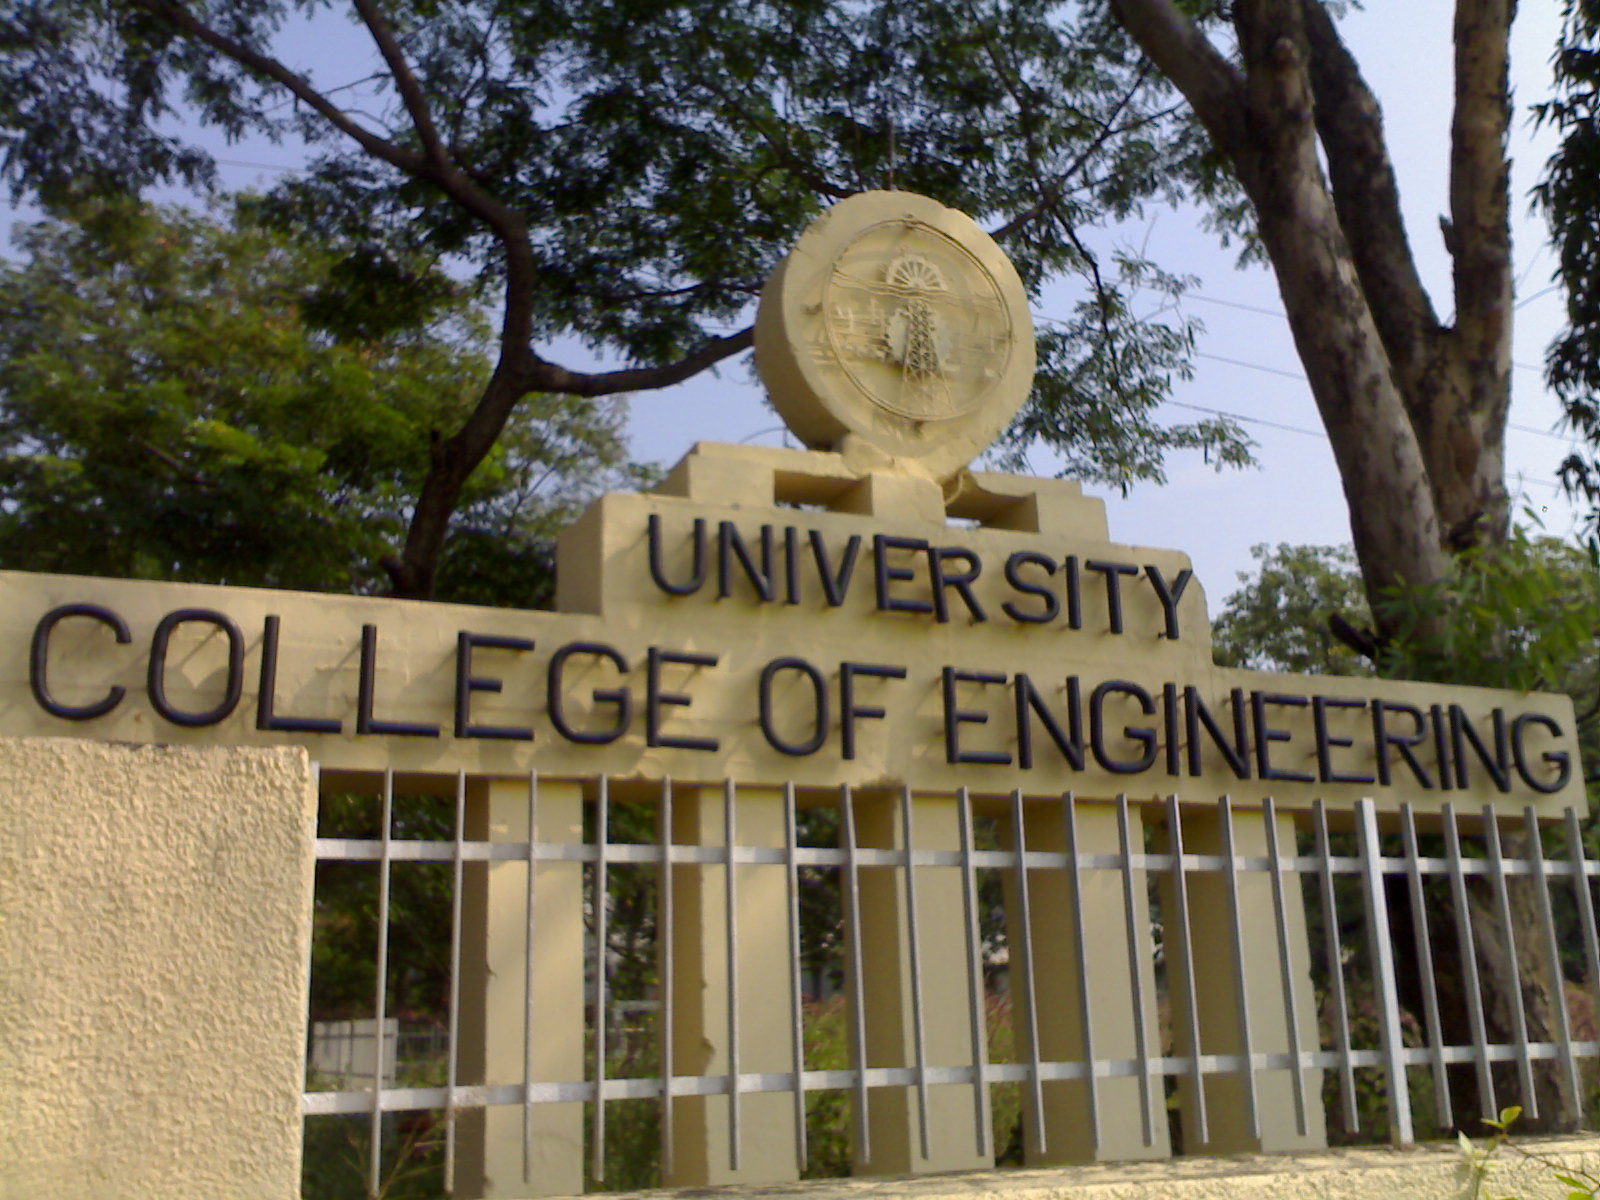 Civil Engineering what subjects in the secondary education in kingsborough college